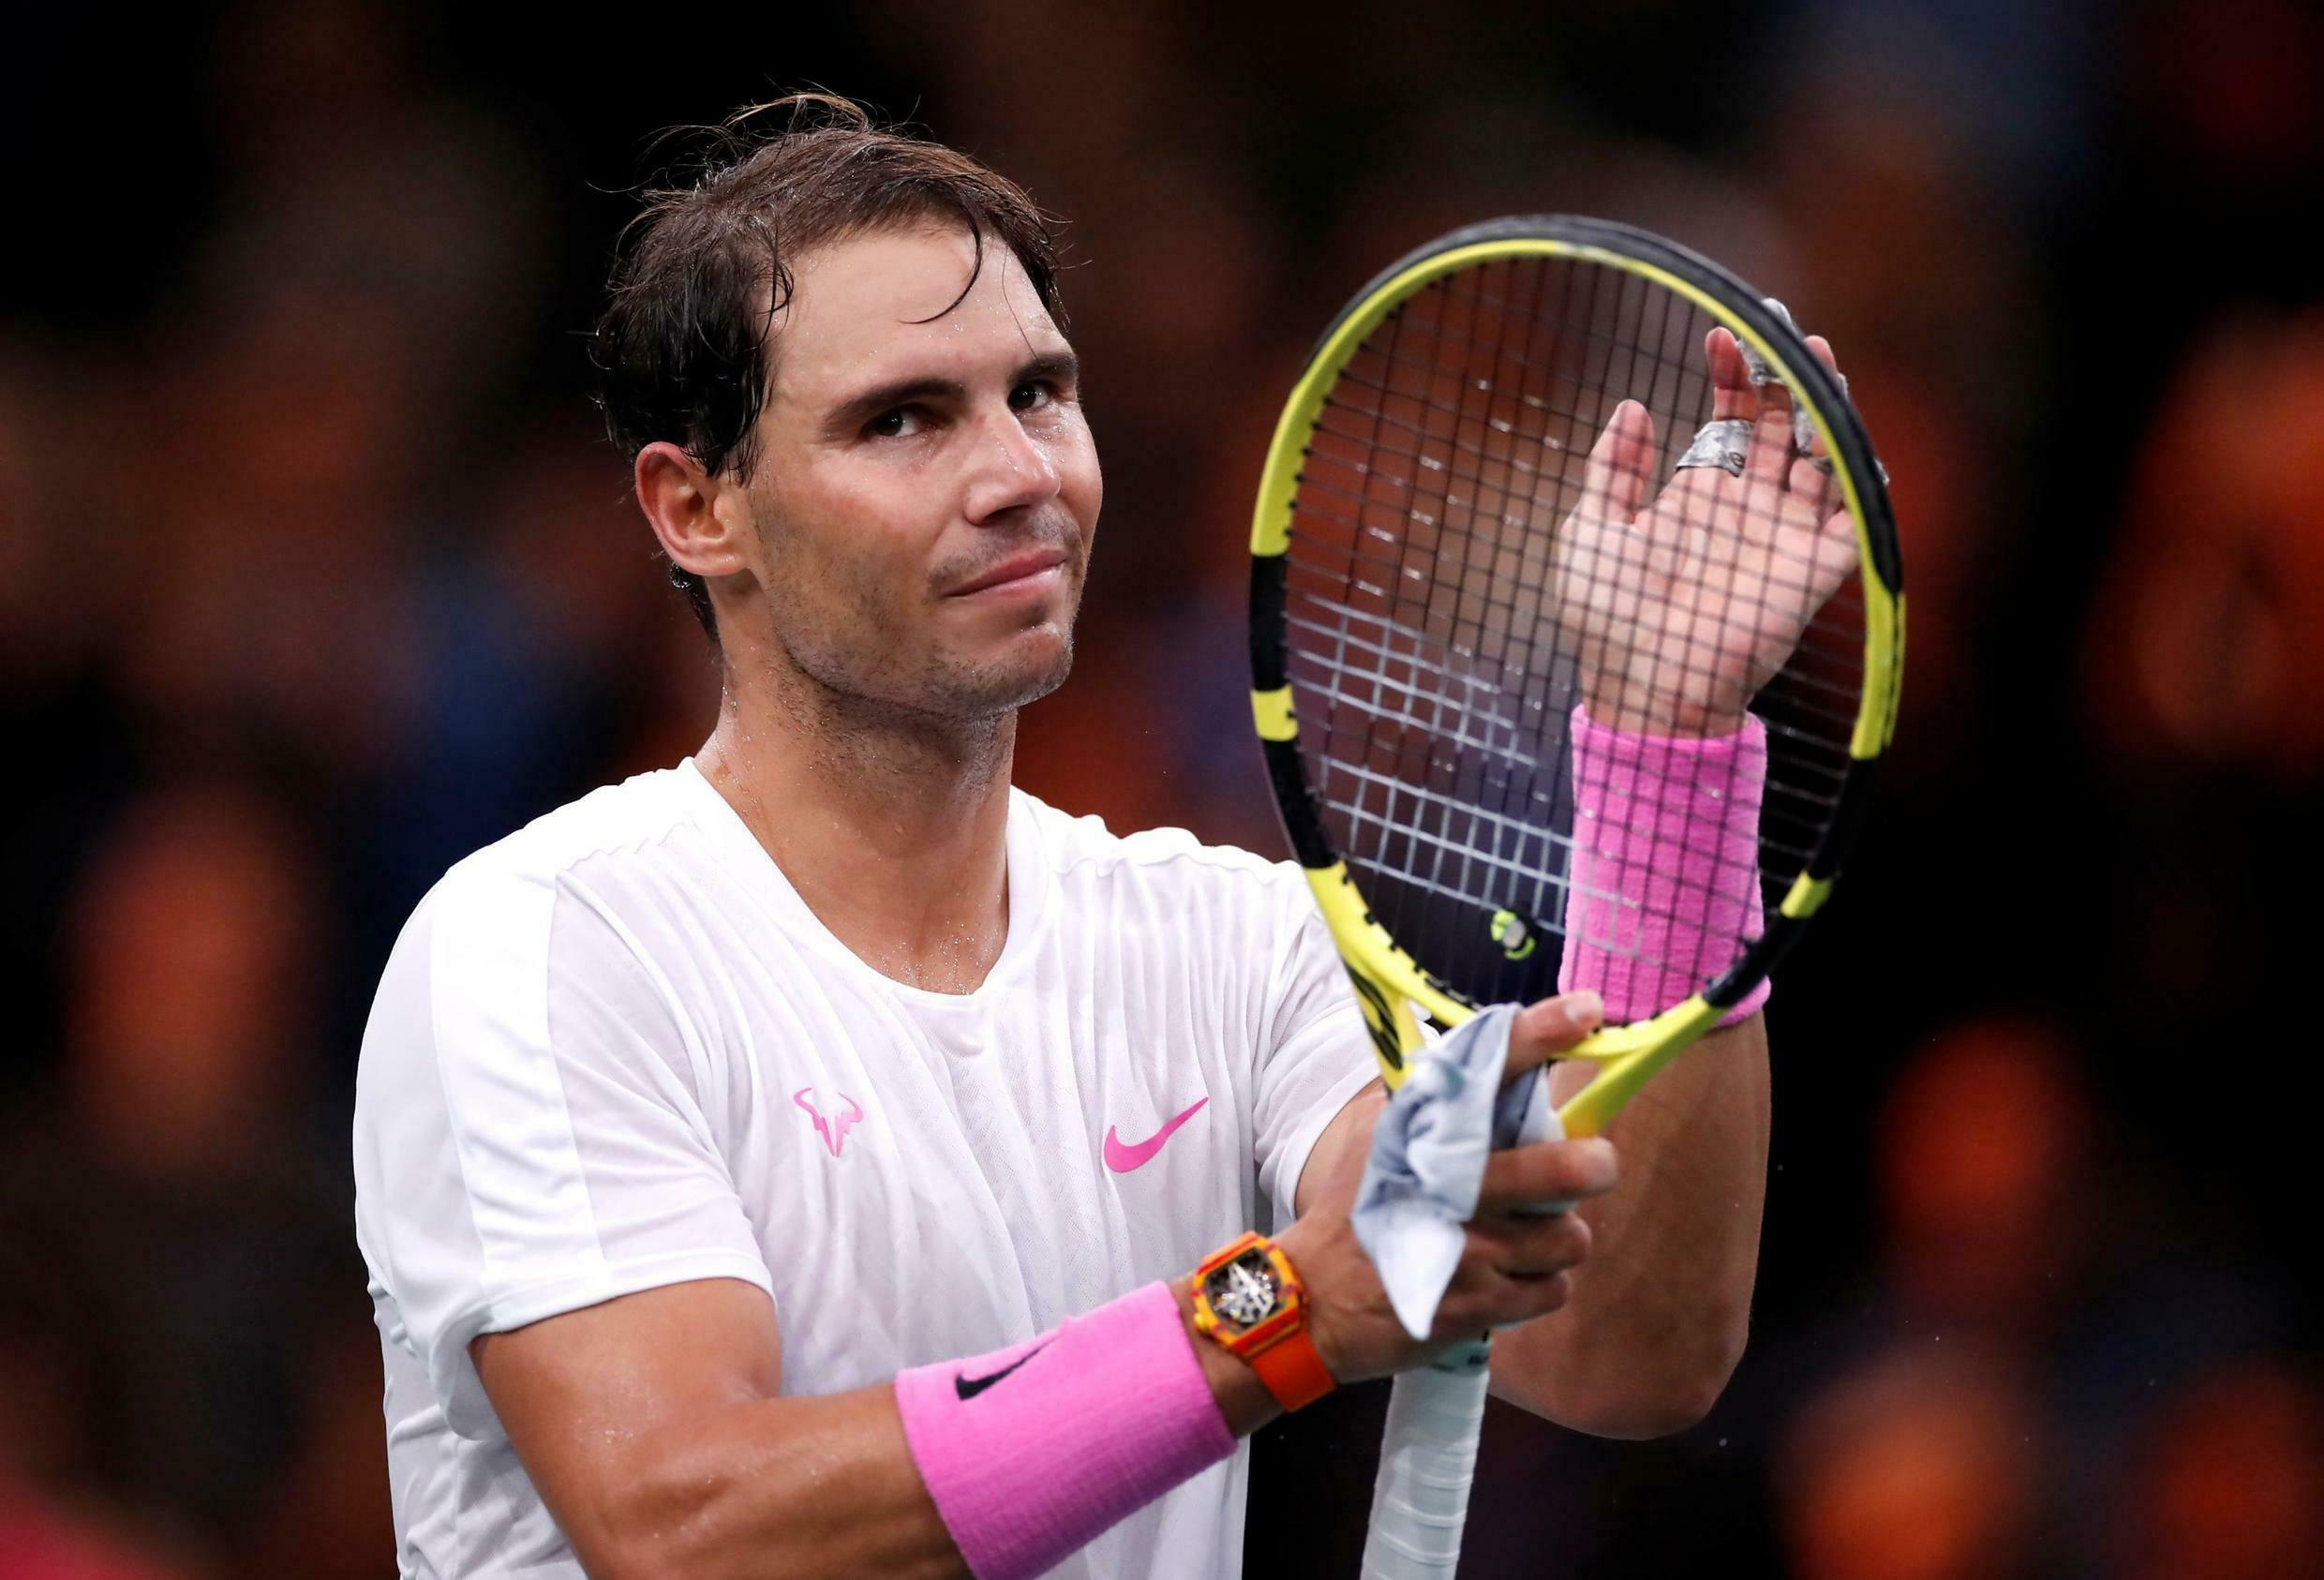 Rafael Nadal lost his singles match against Belgium's David Goffin but teamed up with Pablo Carreno Busta for the win in the decisive doubles match.